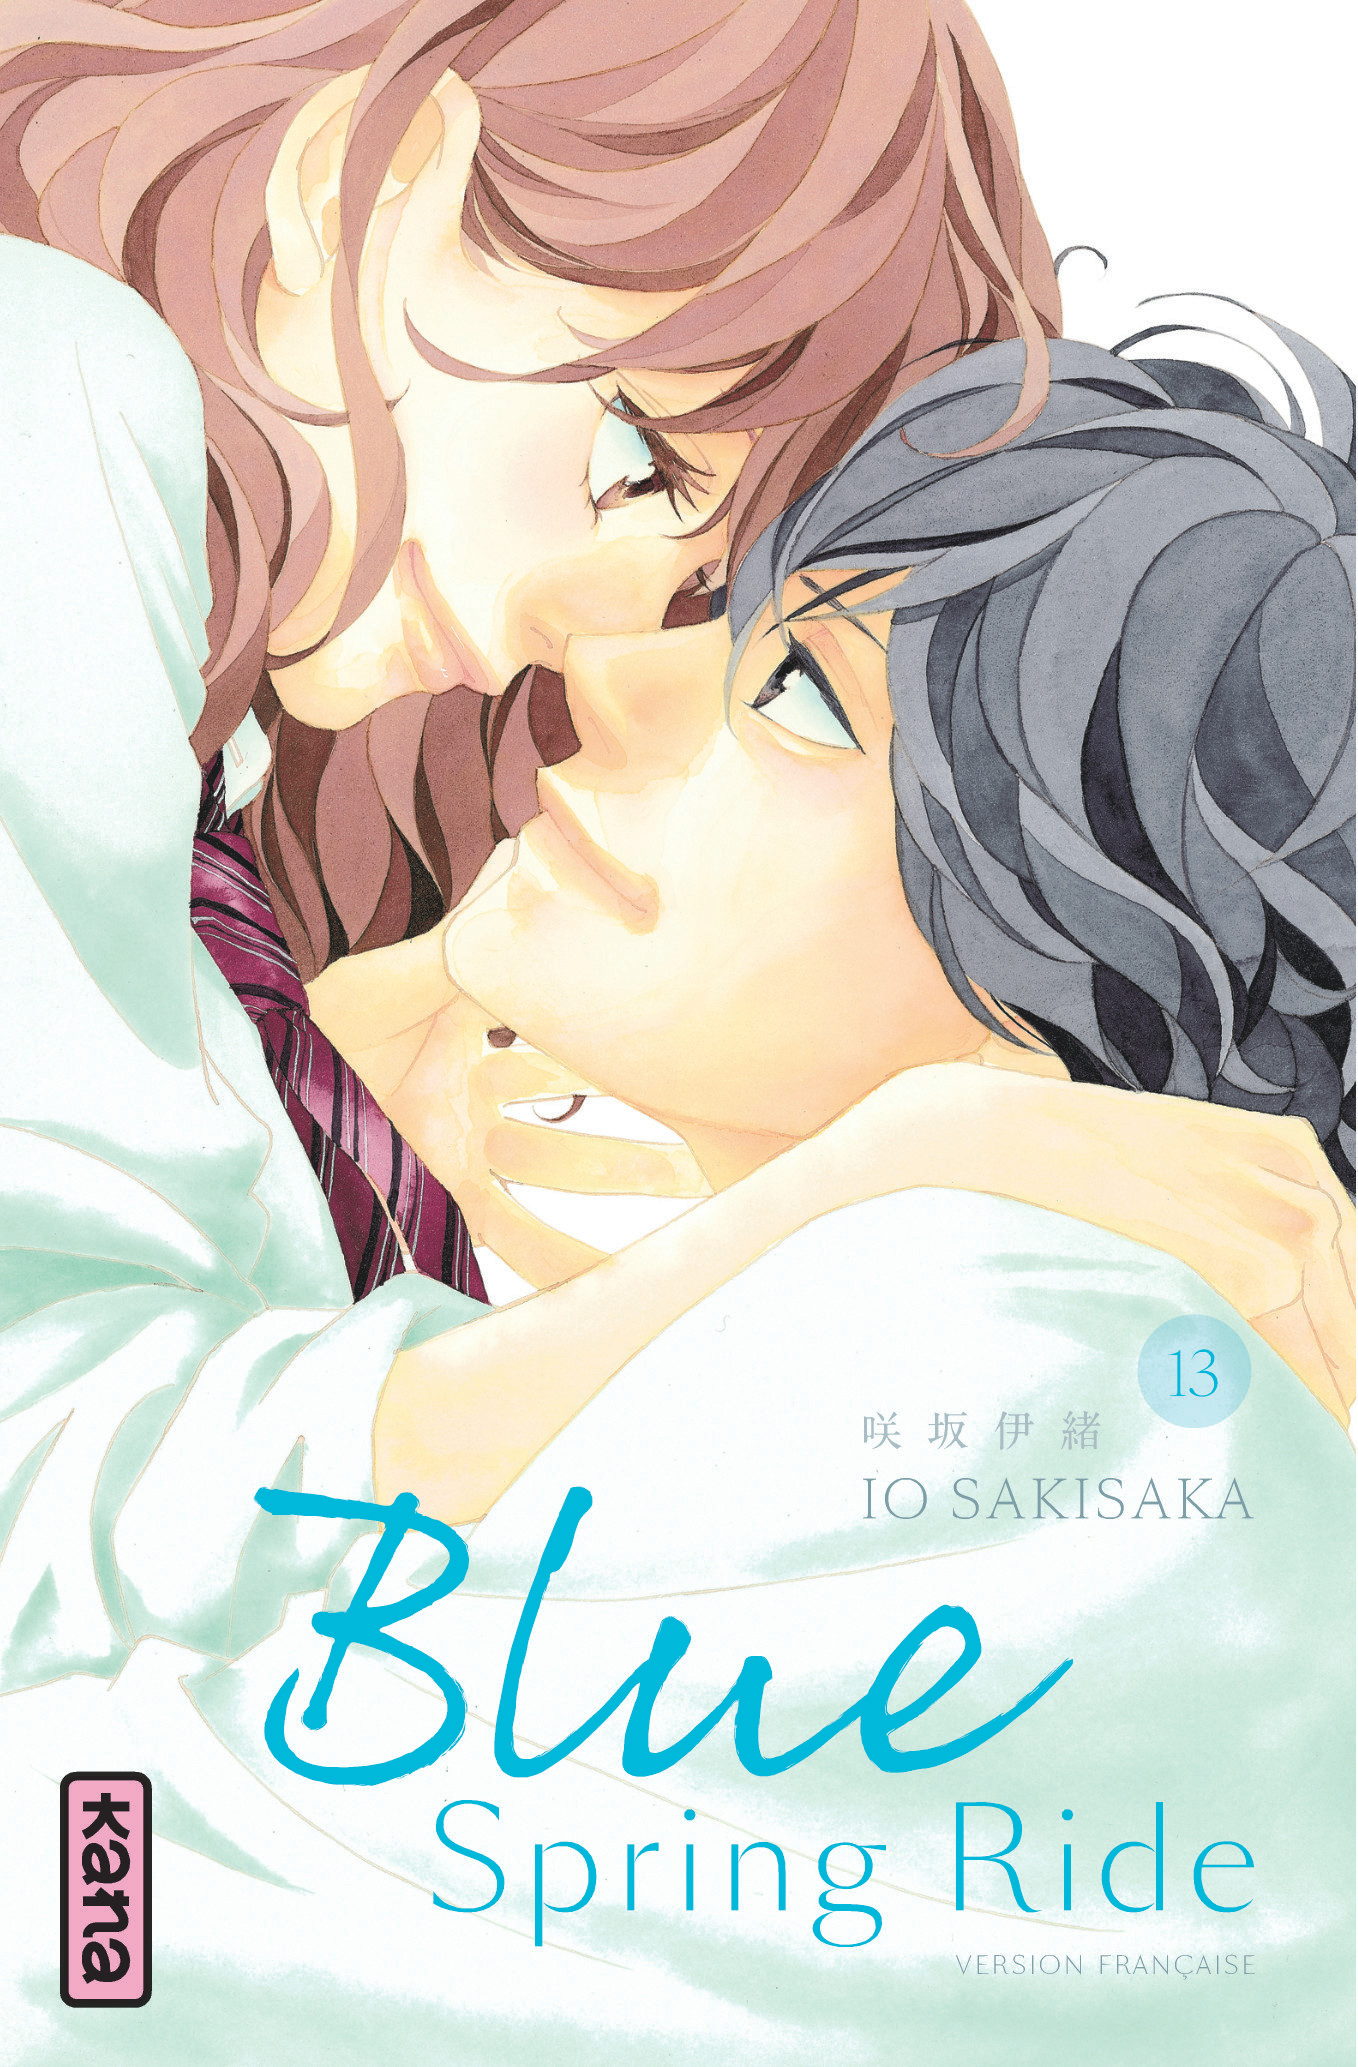 [MANGA/ANIME] Blue Spring Ride (Ao Haru Ride) - Page 4 Blue-spring-ride-manga-volume-13-simple-245006